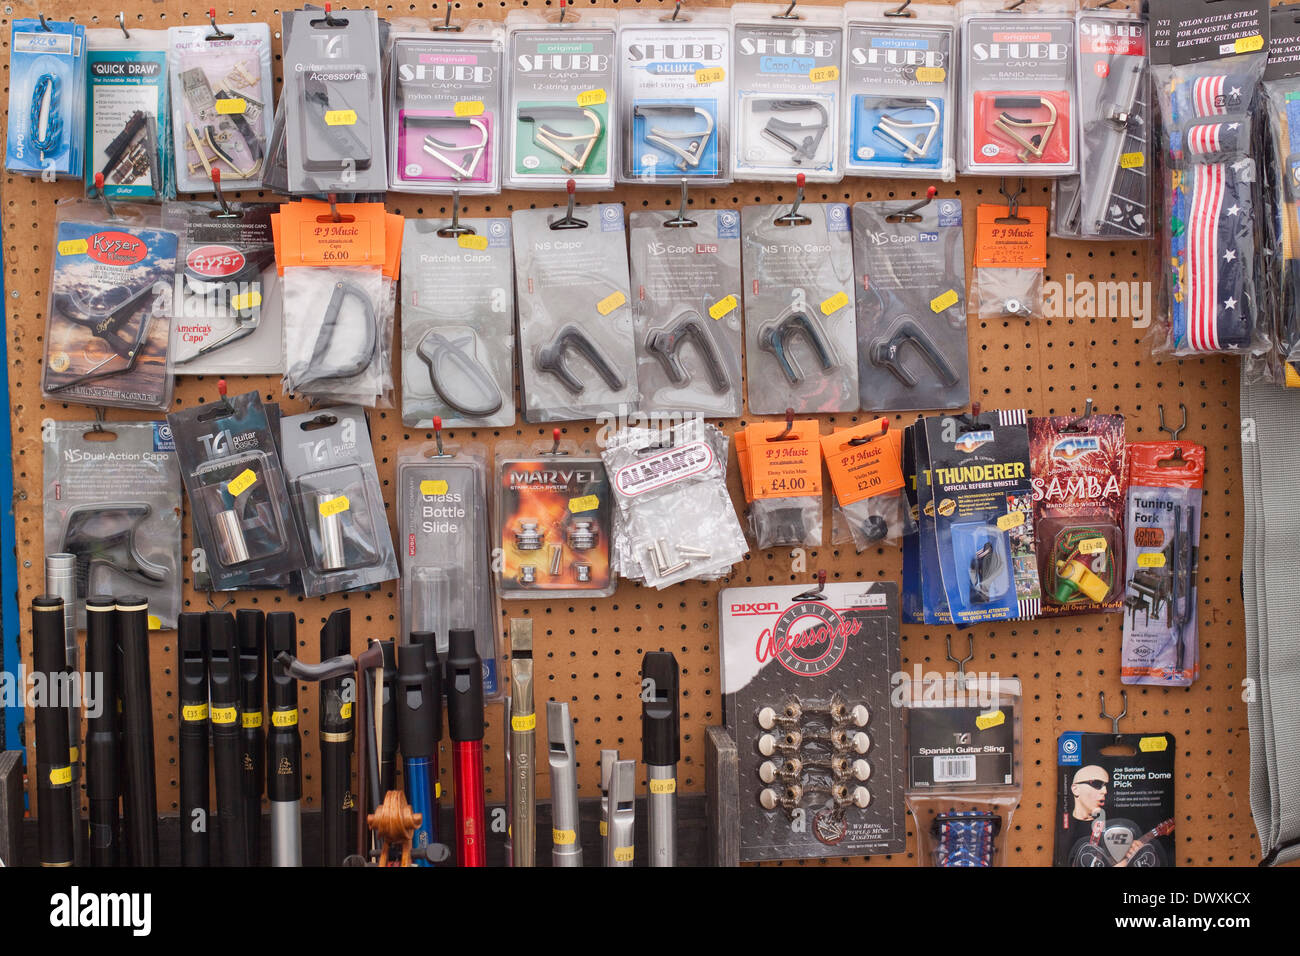 Shop display on pegboard of musical accessories including guitar capos, bottlenecks, whistles, machine heads, etc. - Stock Image